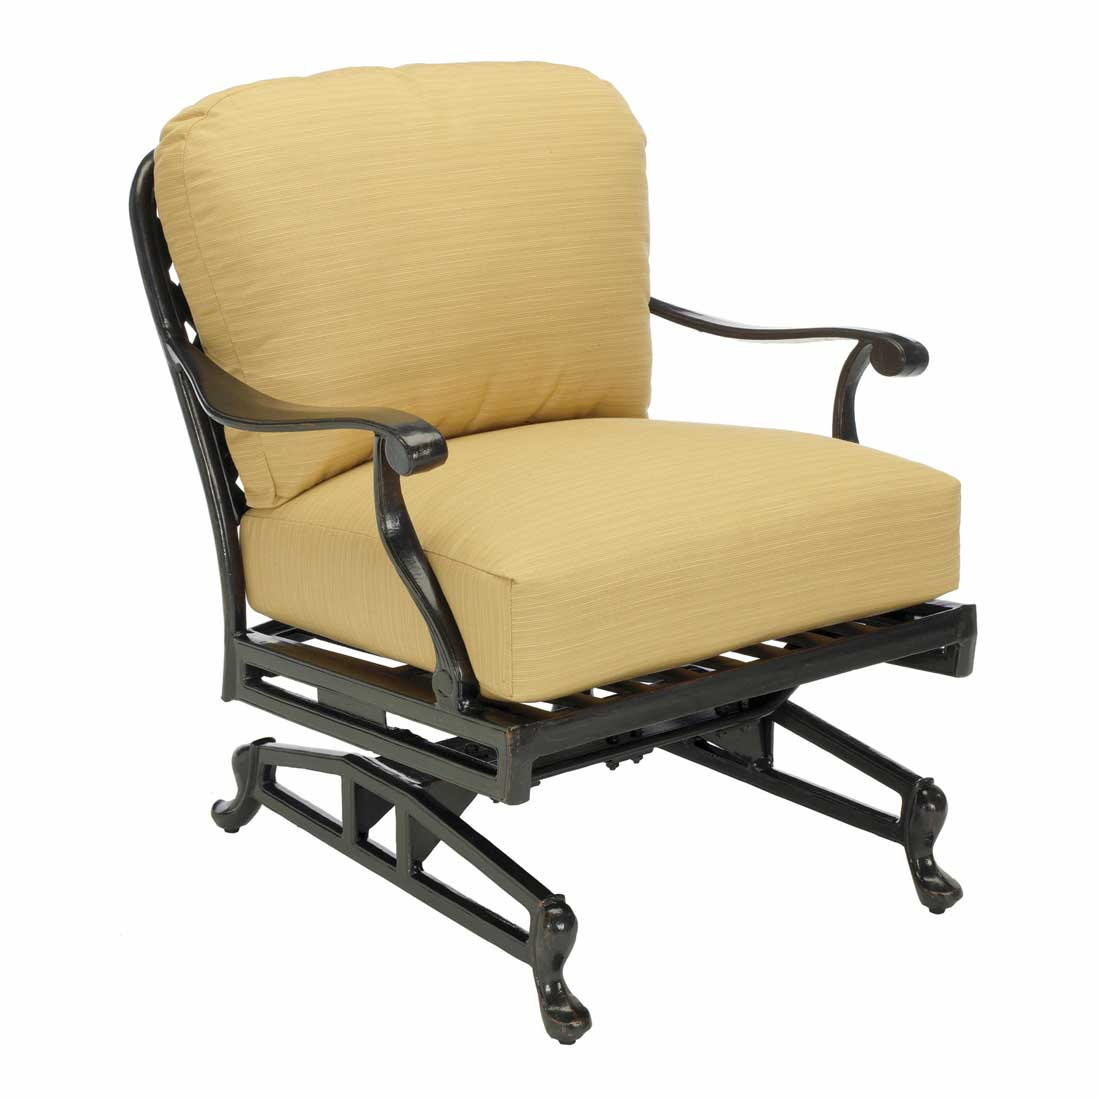 Provance Spring lounge Chair - Dimensions: W32 D32 H36